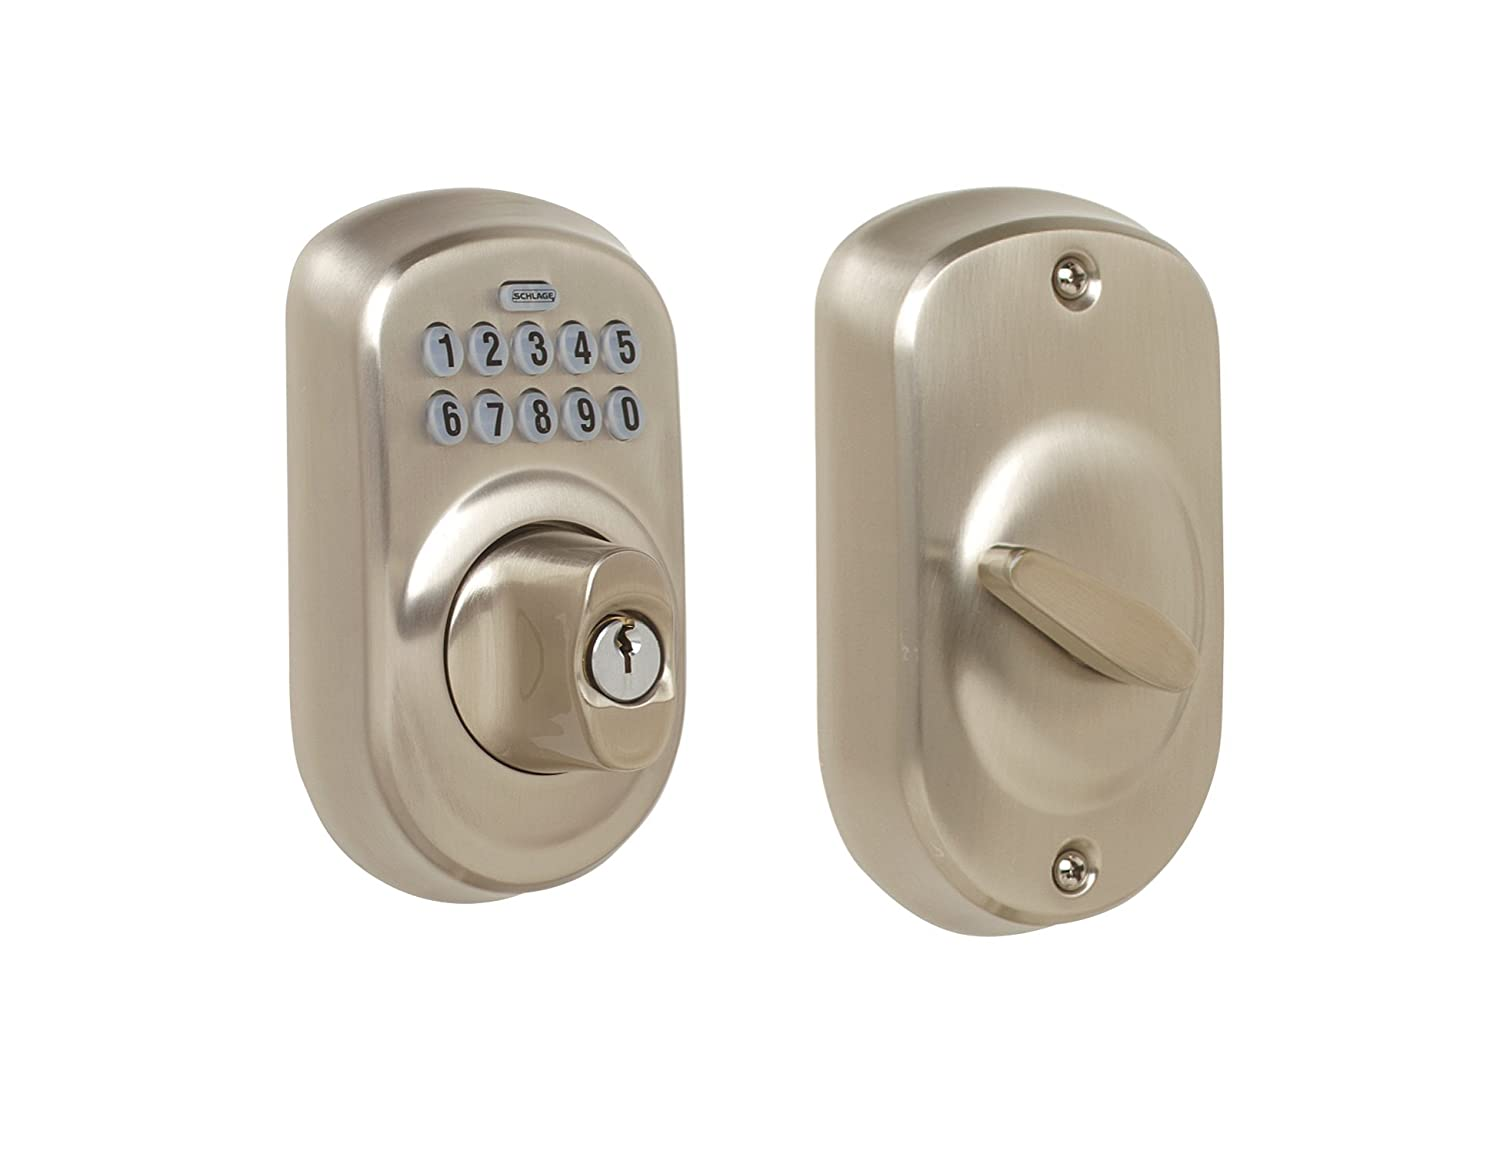 Home deadbolt locks